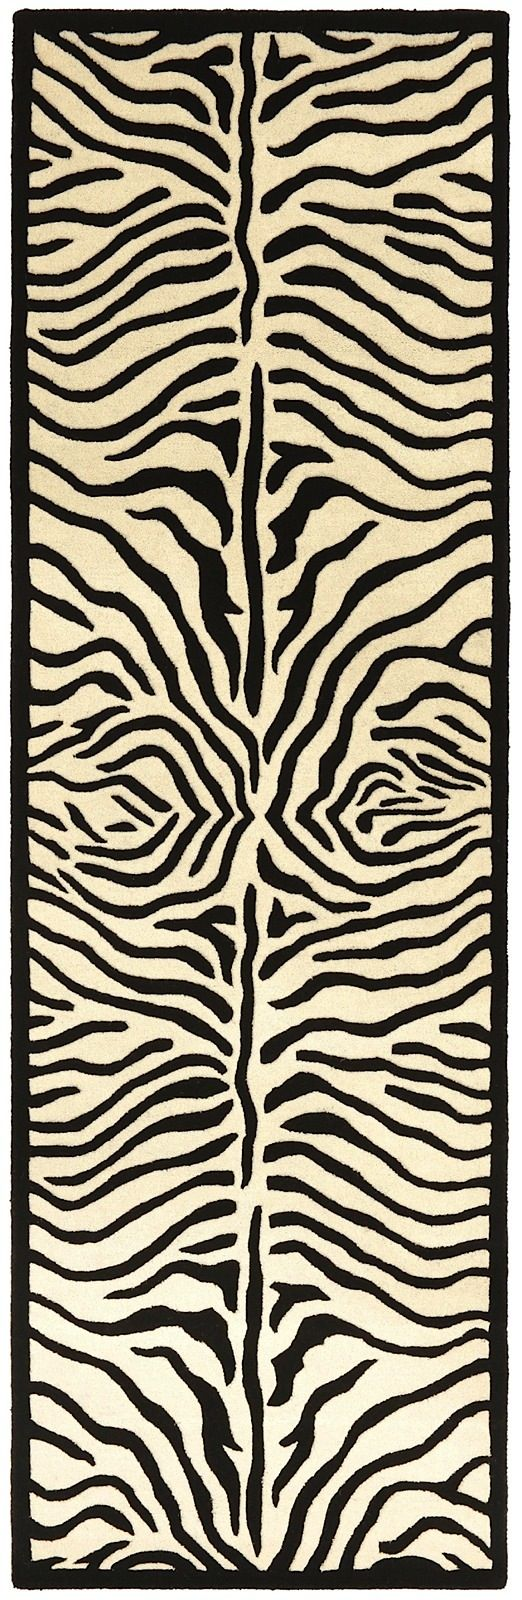 st croix trading safari animal inspirations area rug collection